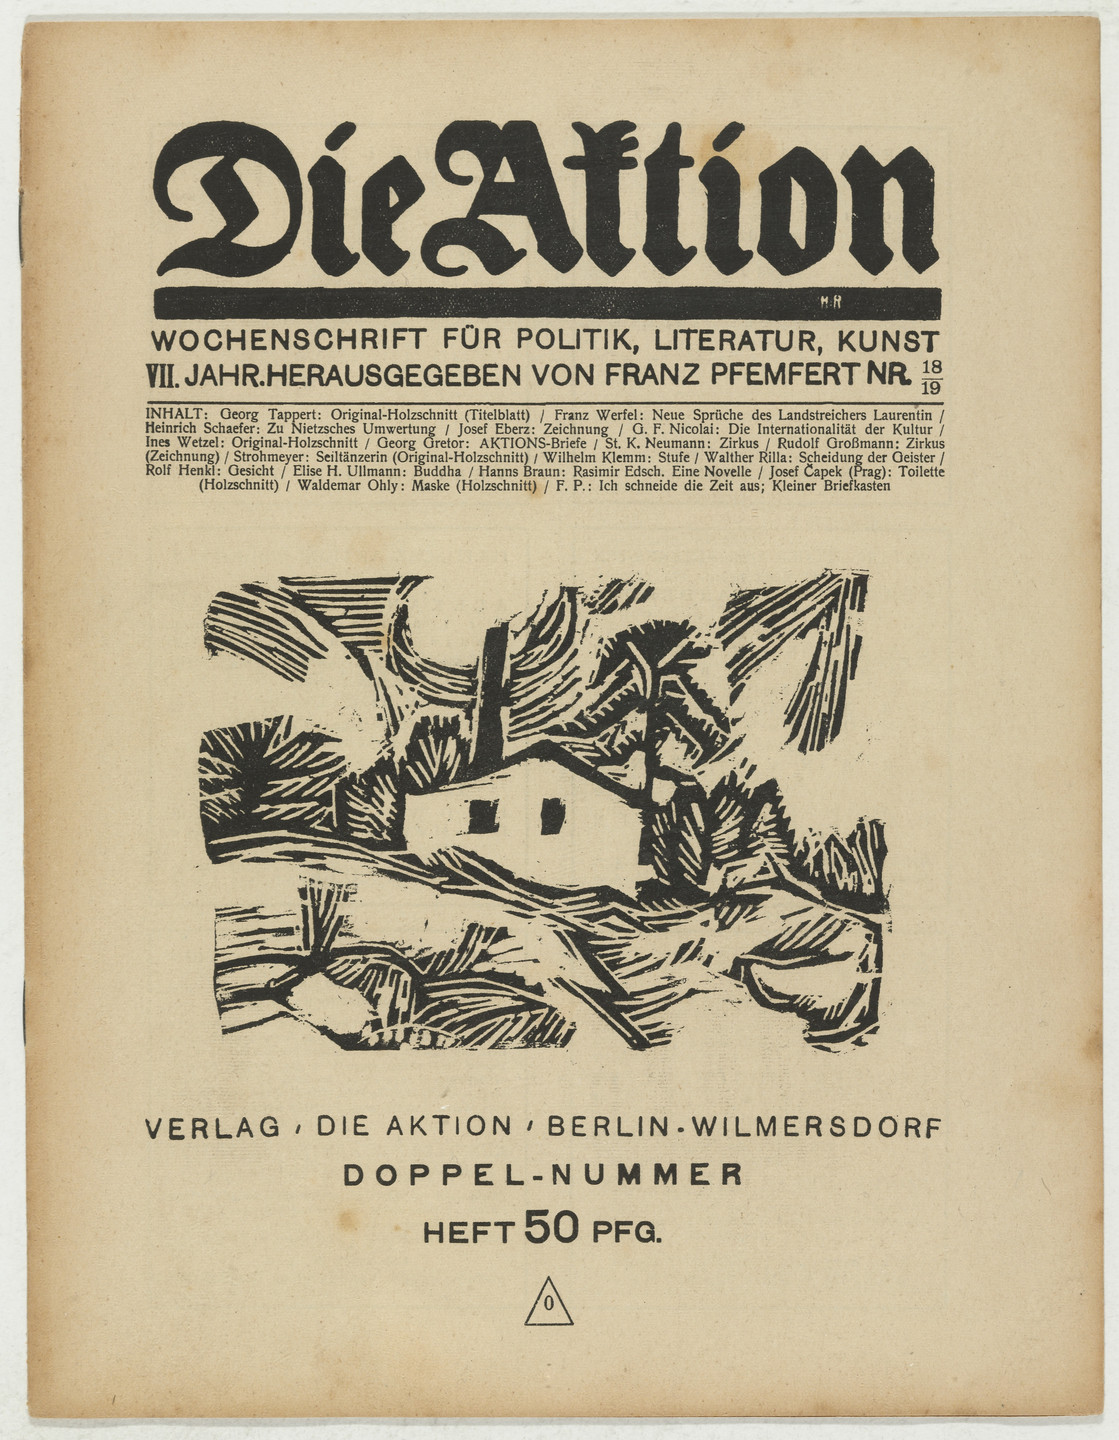 Georg Tappert, Ines Wetzel, Ottheinrich Strohmeyer, Josef Capek, Waldemar Ohly. Die Aktion, vol. 7, no. 18/19. May 5, 1917